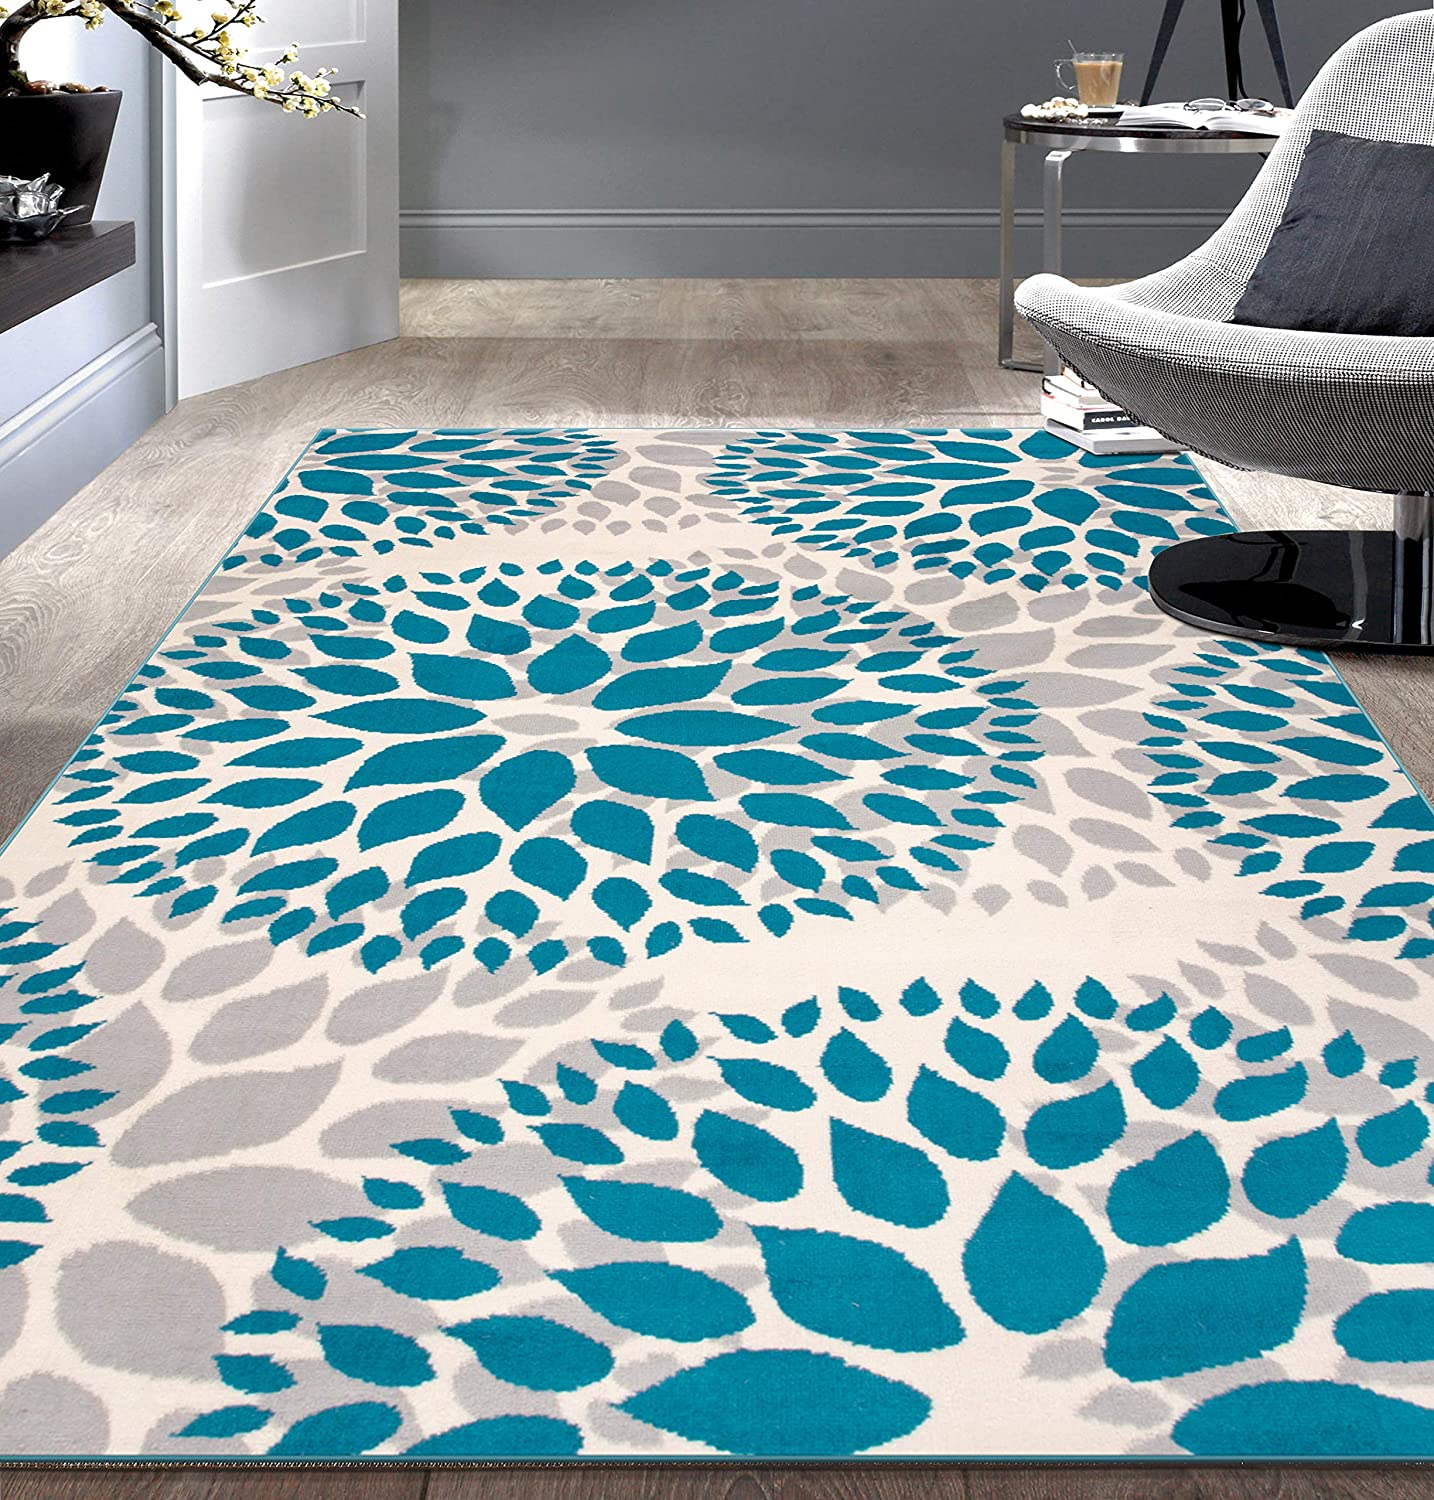 Modern Floral Circles Design Area Rugs 5' X 7' Blue: Furniture & Decor